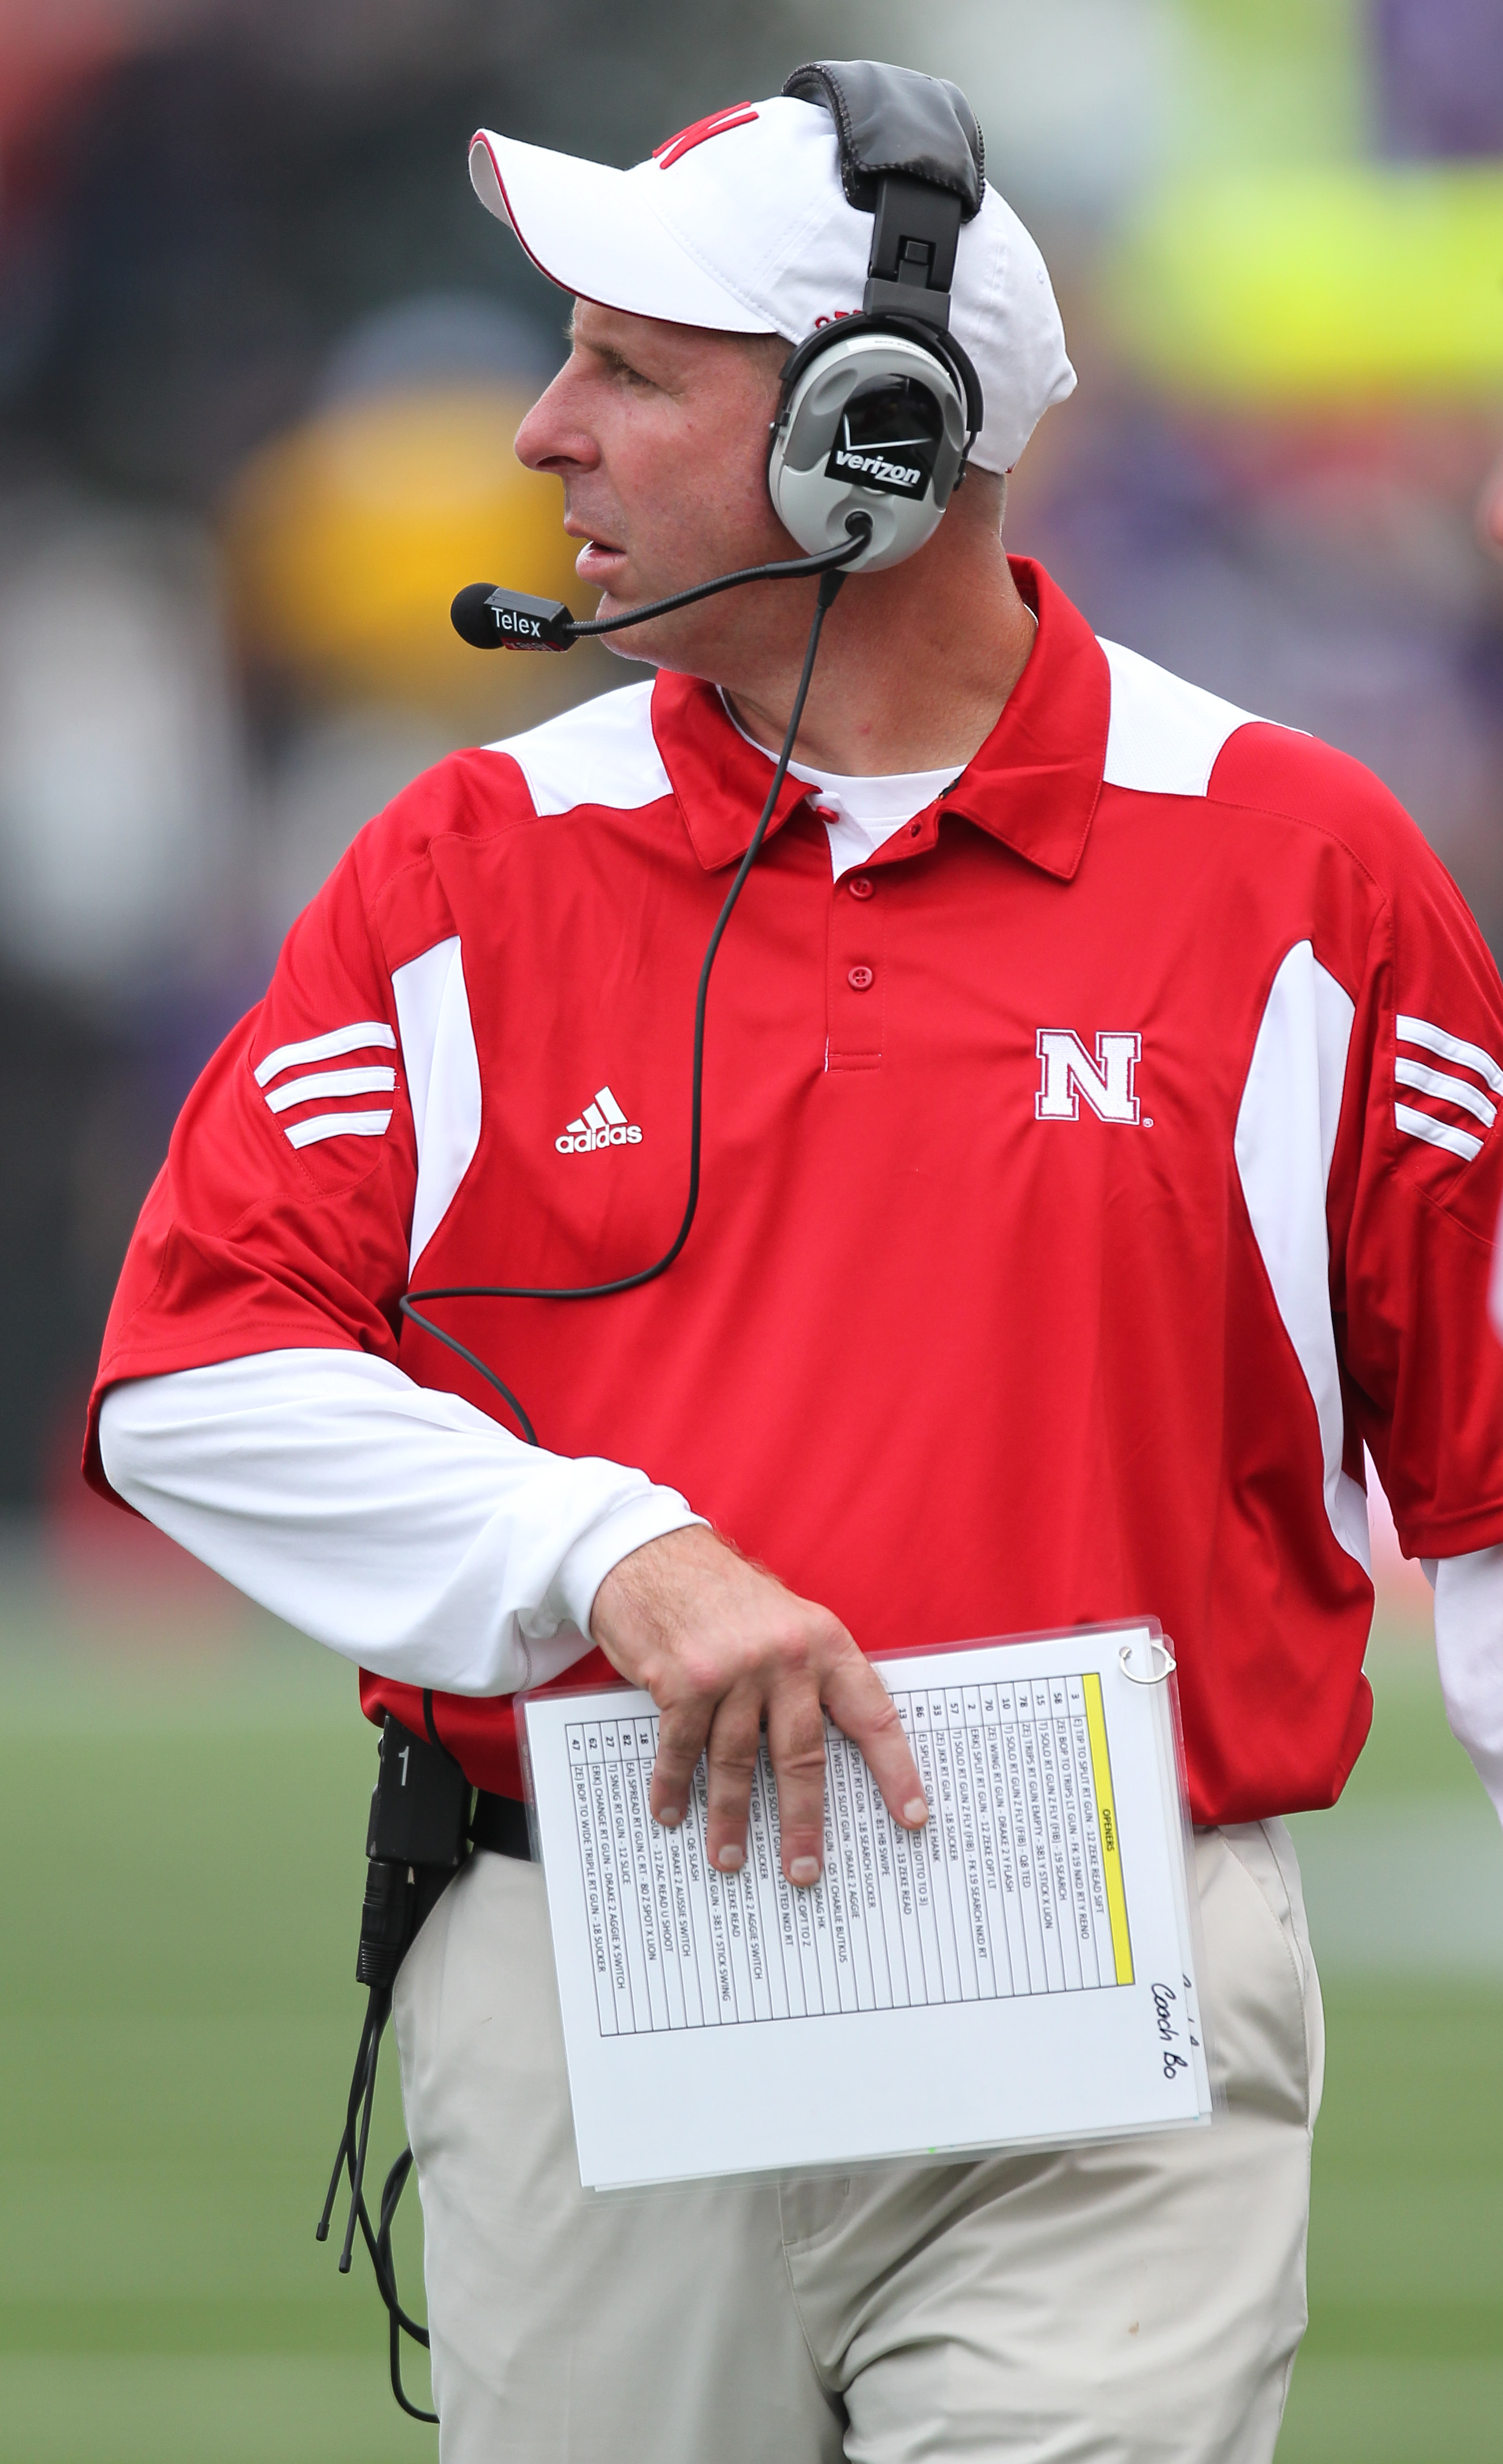 SEATTLE - SEPTEMBER 18: Head coach Bo Pelini of the Nebraska Cornhuskers looks on during the game against the Washington Huskies on September 18, 2010 at Husky Stadium in Seattle, Washington. (Photo by Otto Greule Jr/Getty Images)